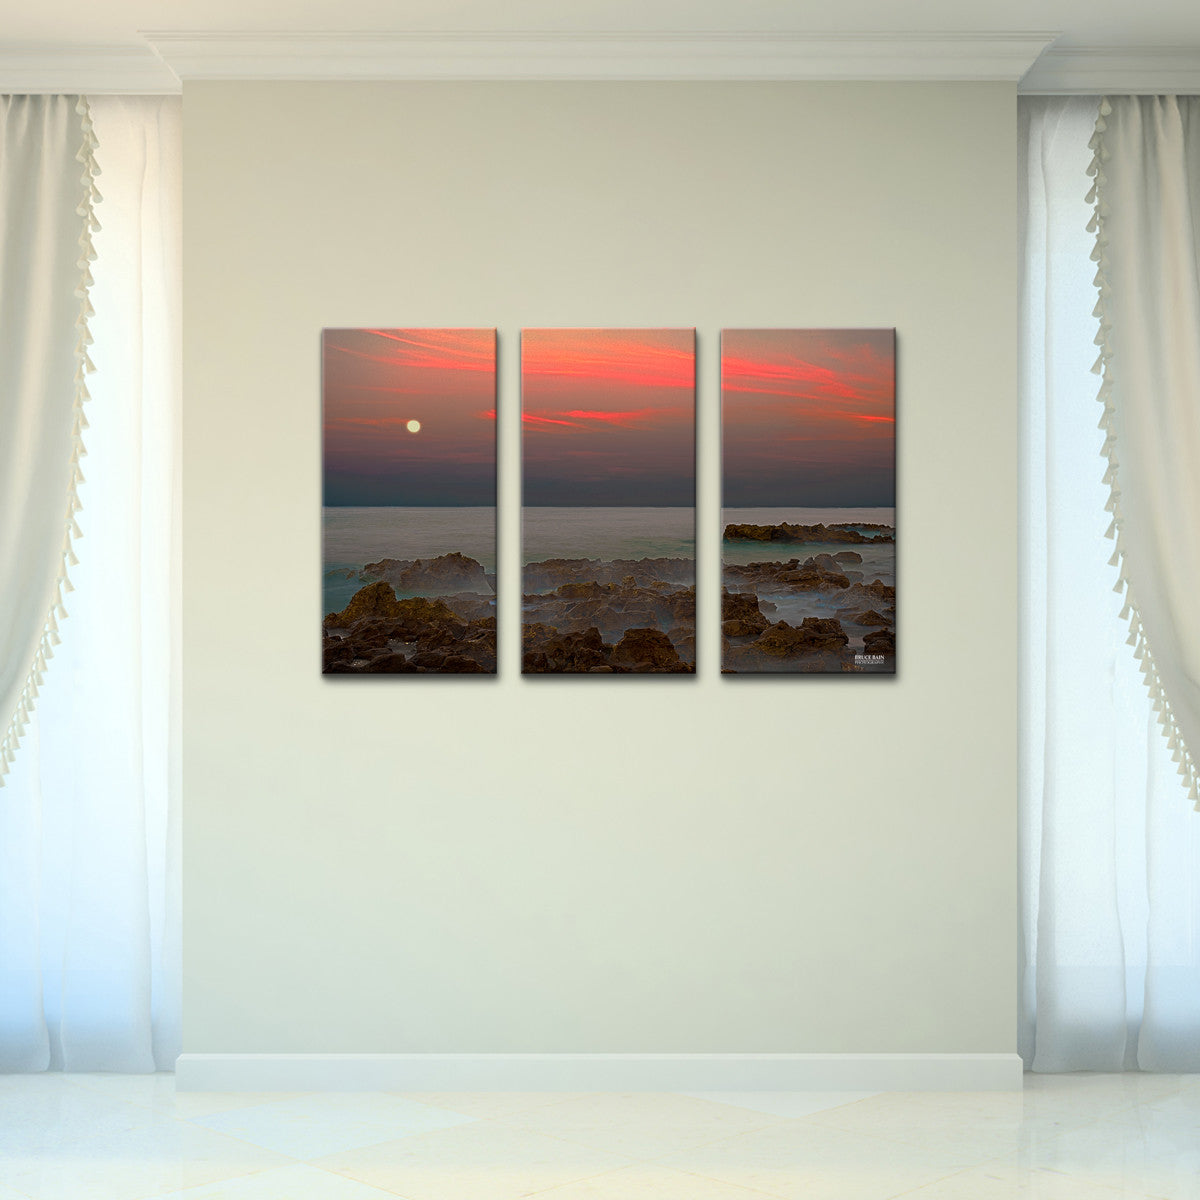 Bruce Bain 'Coral Cove' 24x36 inch Canvas Wall Art (3-Pc set)